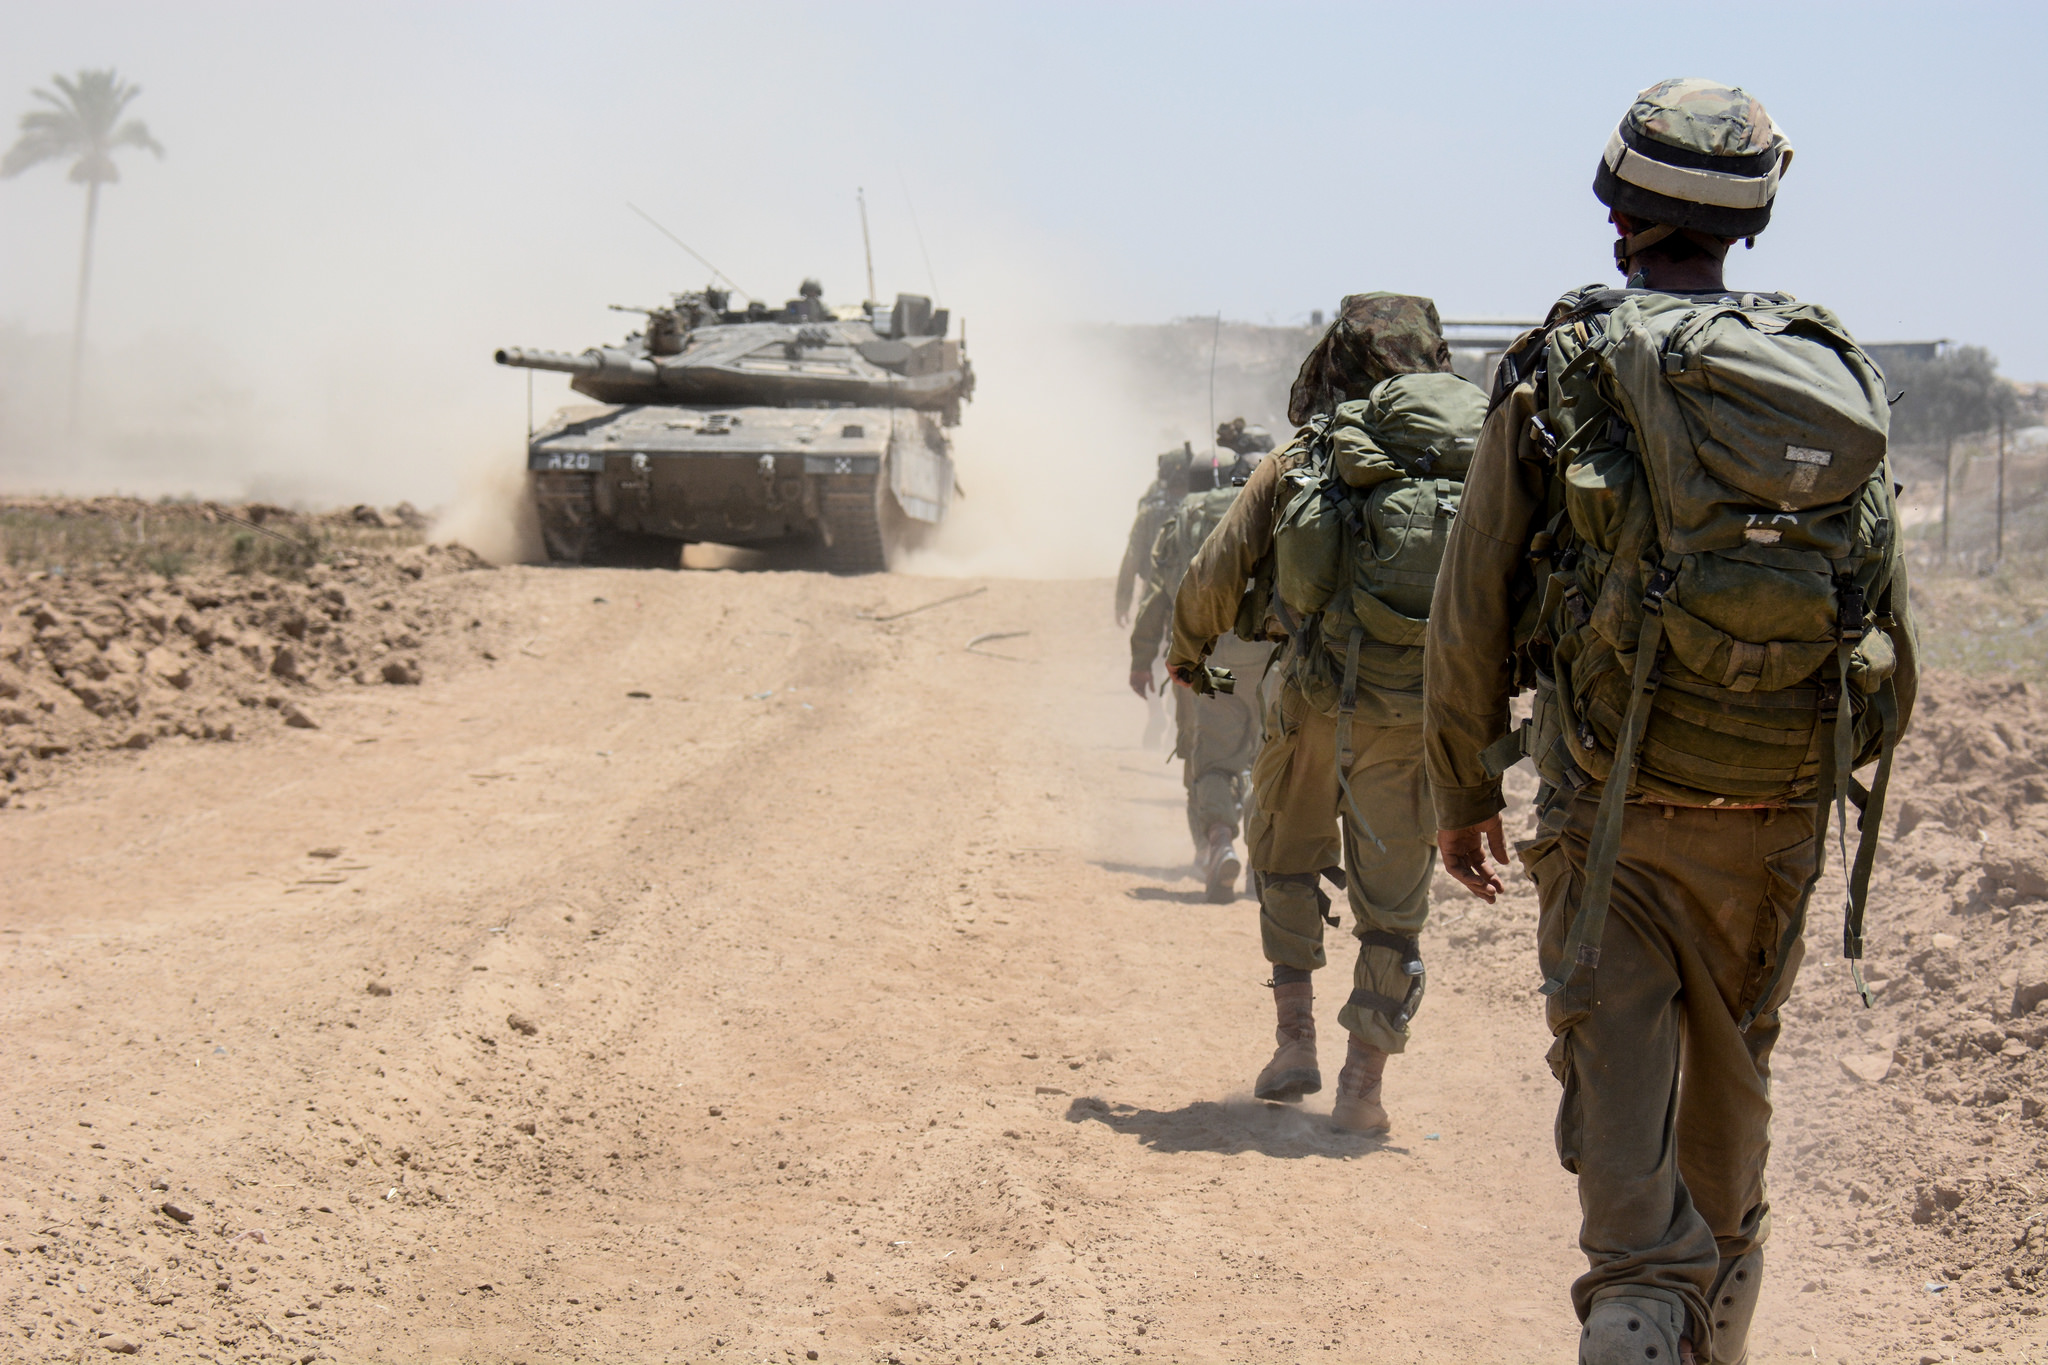 IDF soldiers from the Nahal Brigade operating in Gaza during Operation Protective Edge. IDF/Flickr.